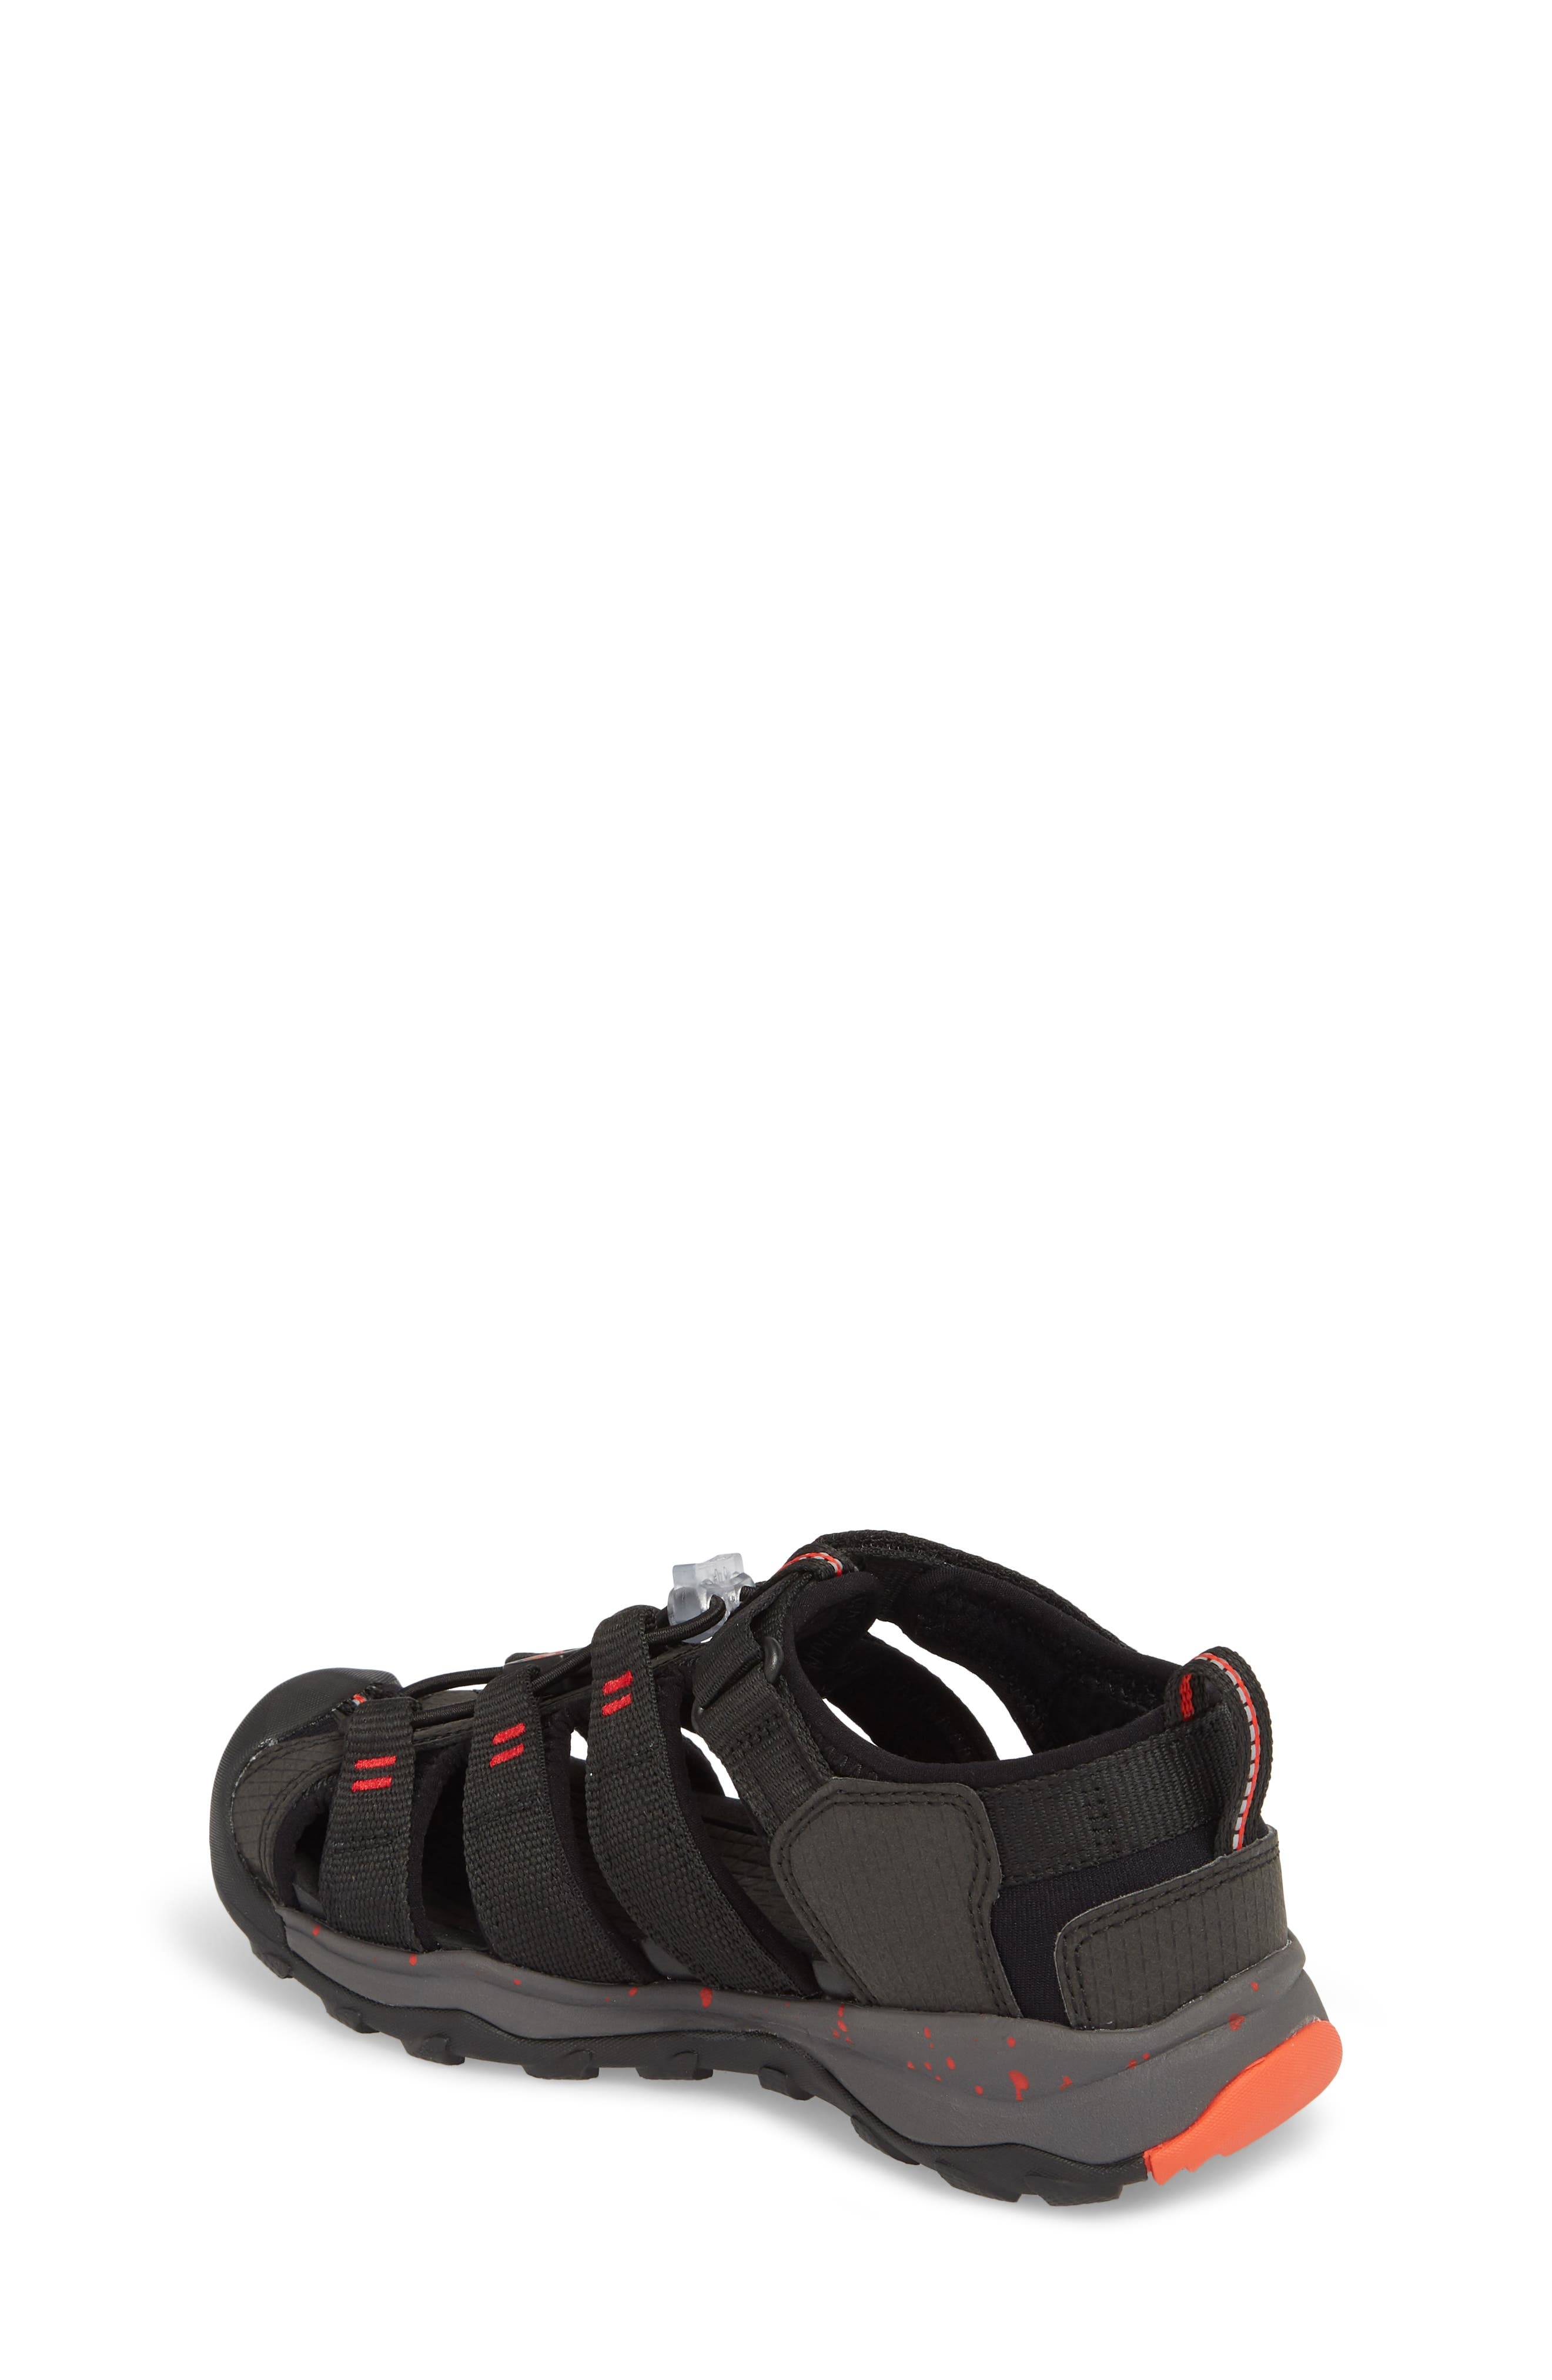 Newport Neo H2 Water Friendly Sandal,                             Alternate thumbnail 2, color,                             001